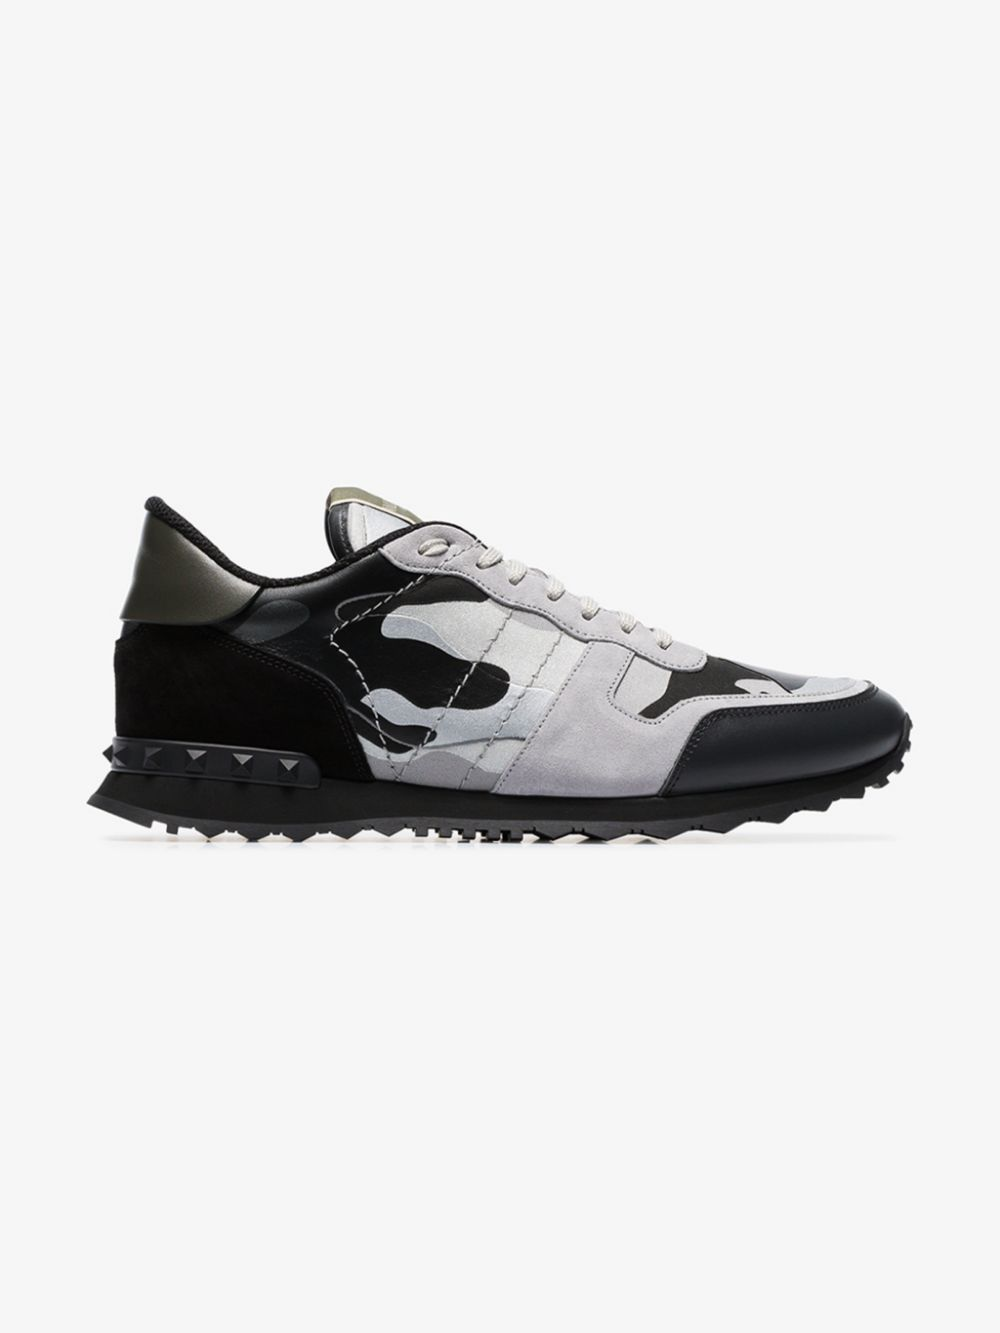 Rockrunner Leather Sneakers